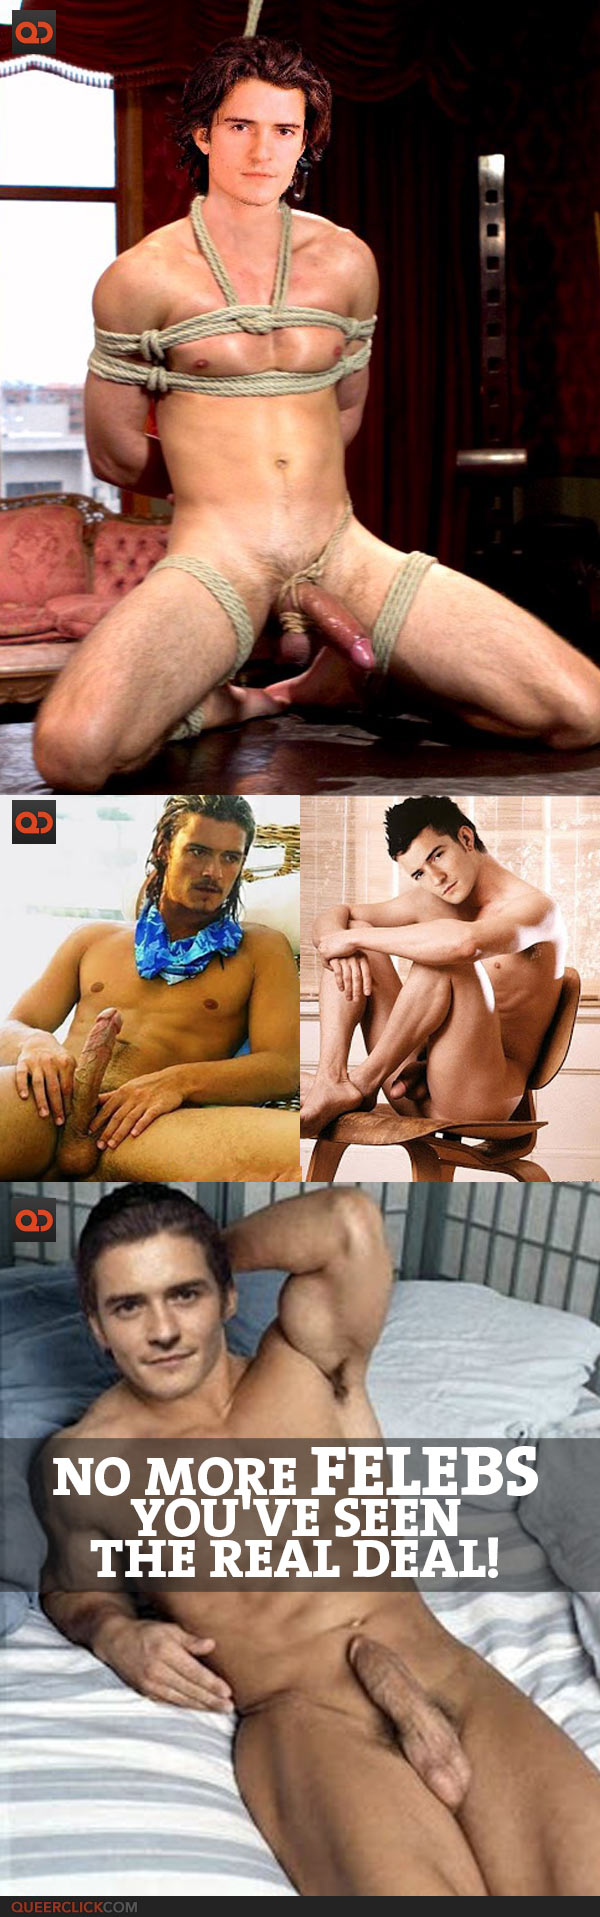 Orlando bloom gay porn